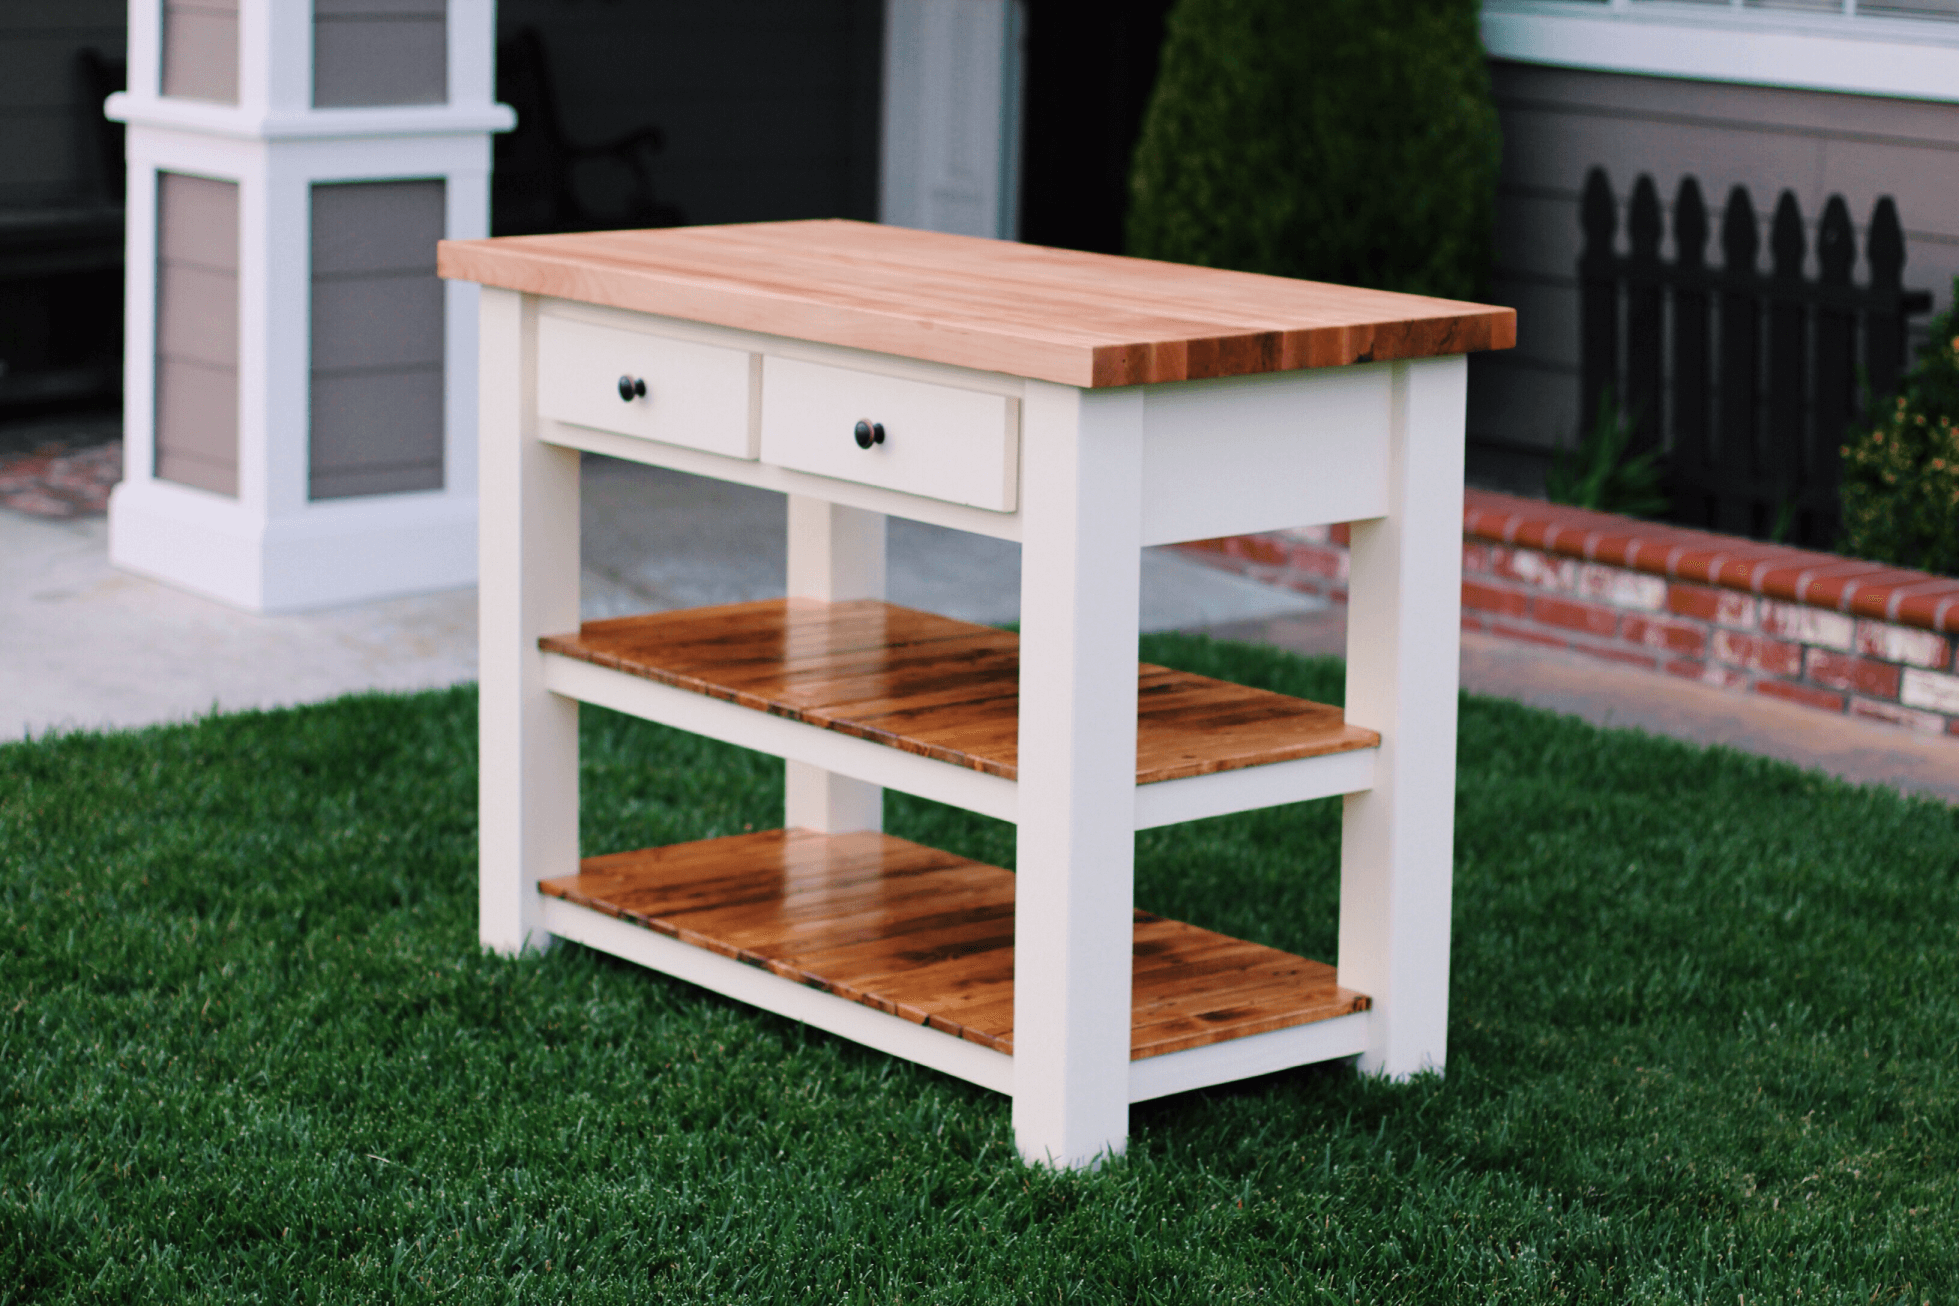 The Butcher Block Kitchen island for small spaces